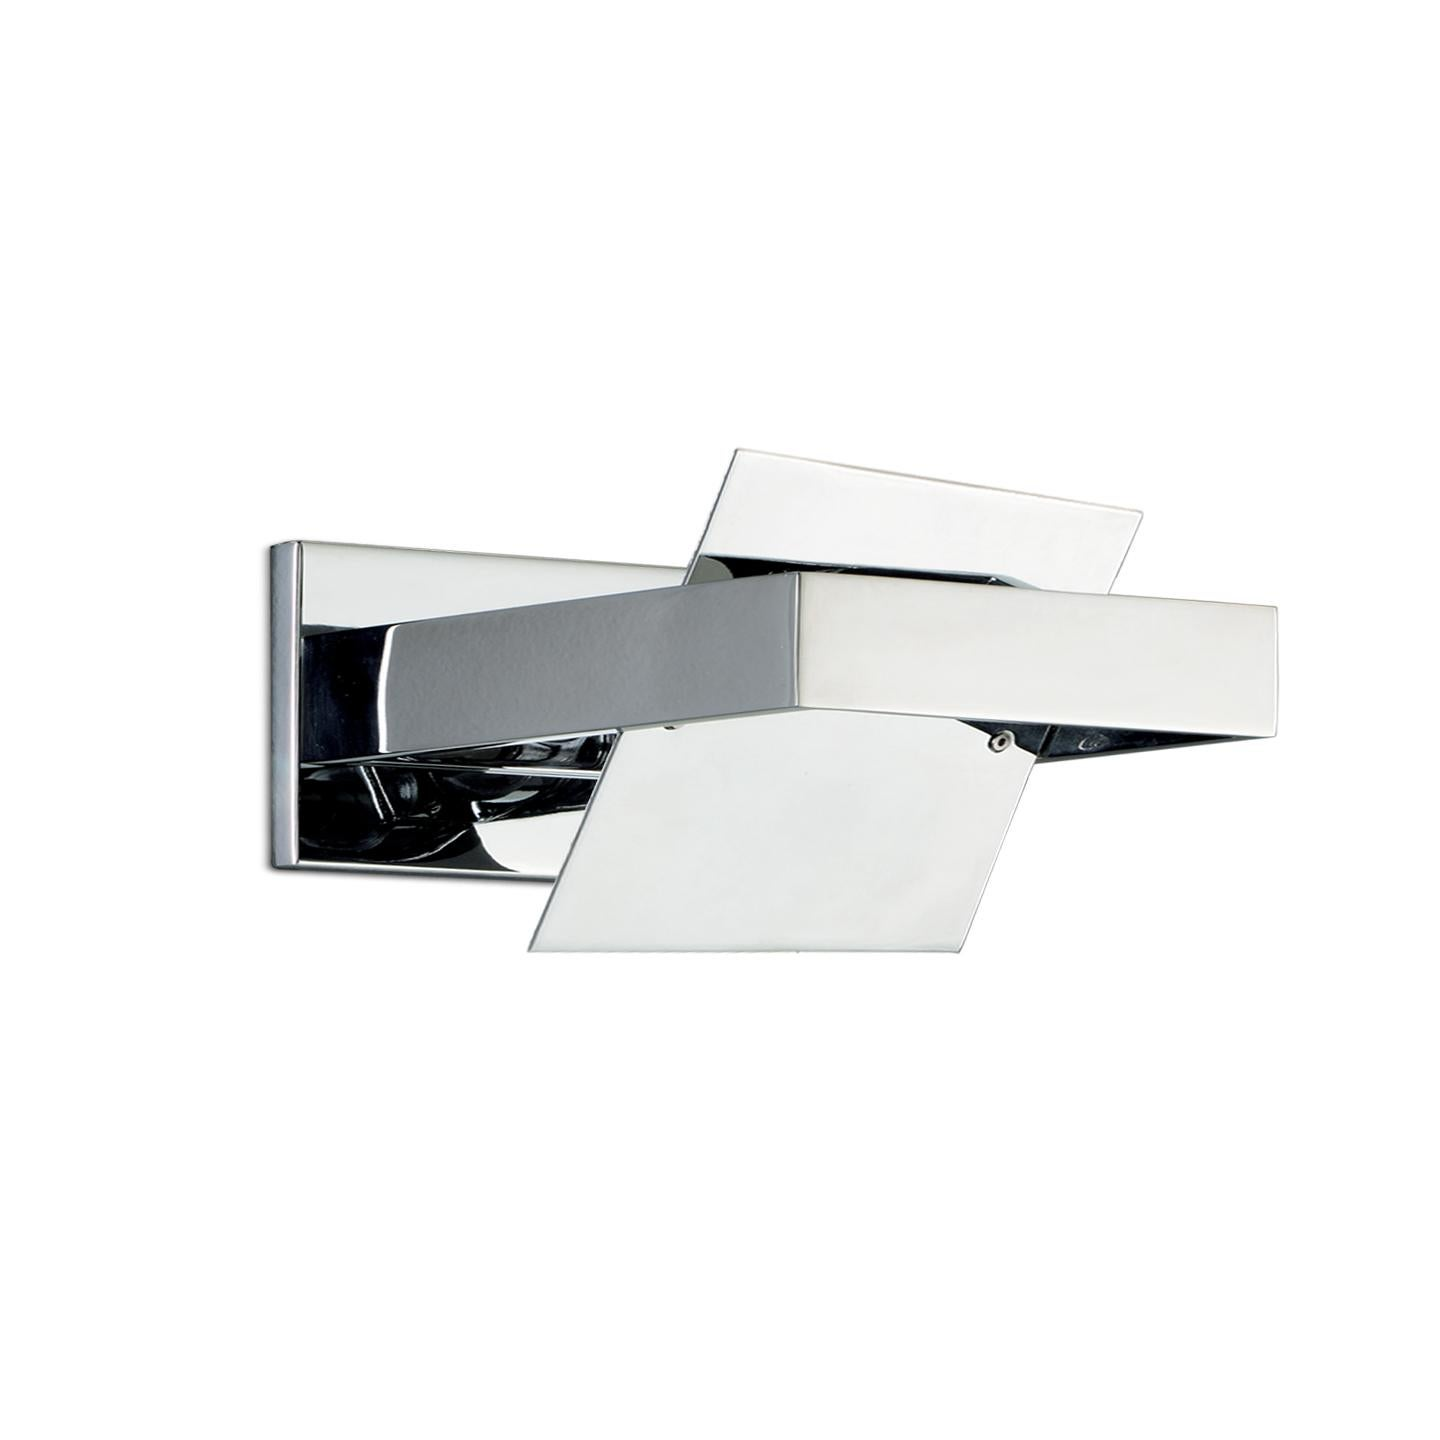 Leucos Ala P 25 Wall Sconce in Chrome and Chrome by Mauro Marzollo